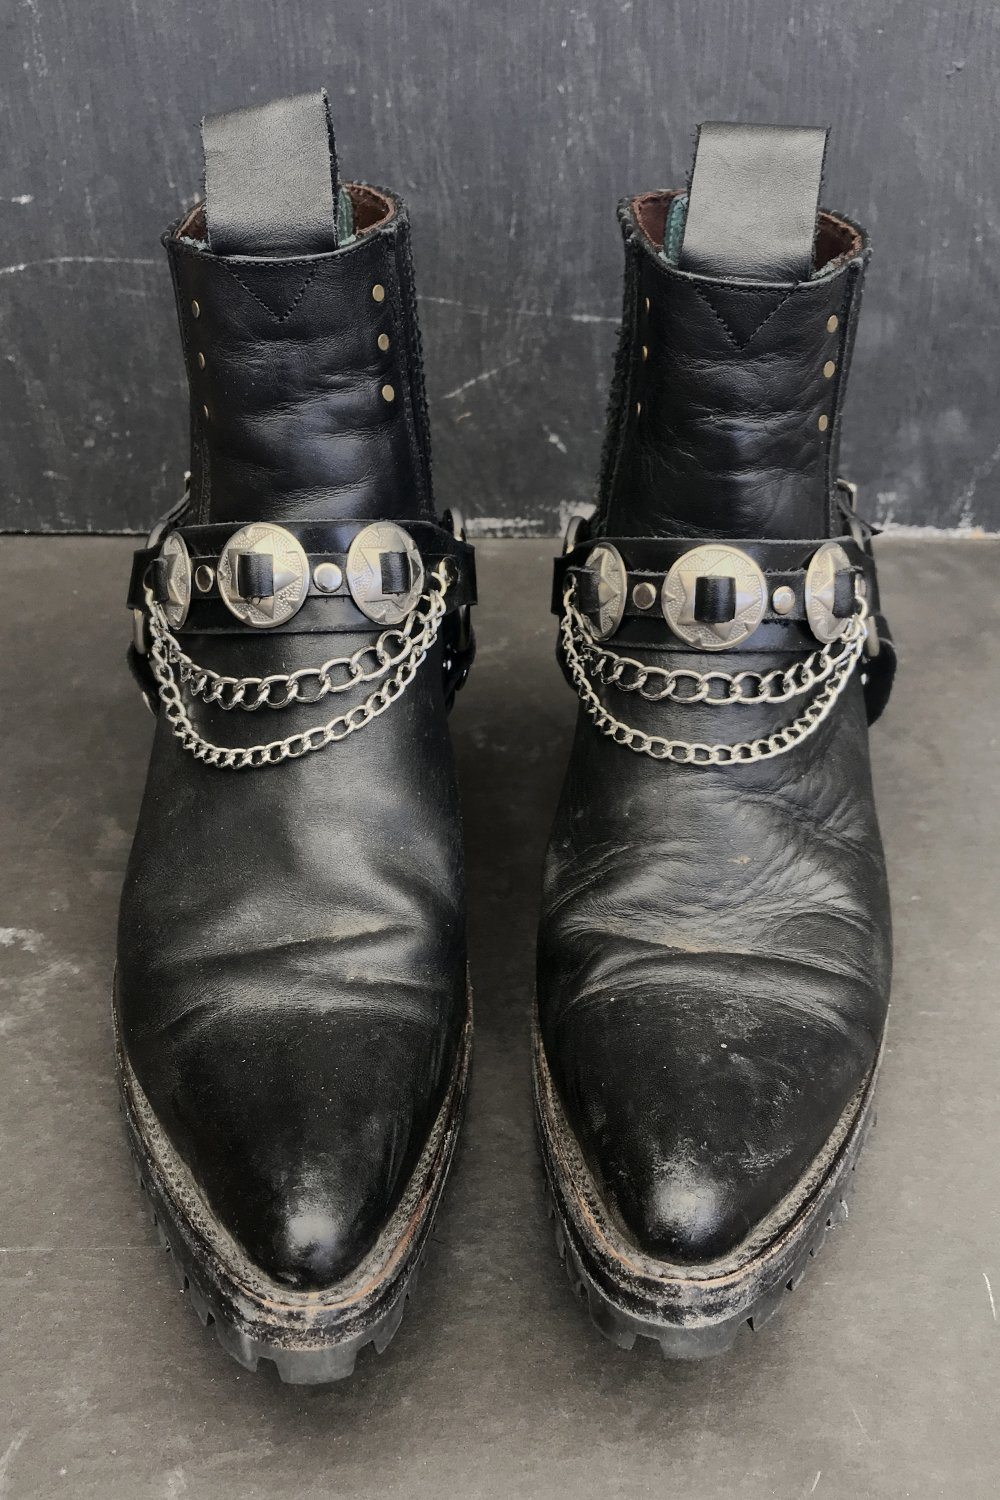 Black Leather Concho & Chain Boot Straps by Hell Bent Leather, Accessories, Hell Bent Leather, BACKBITE